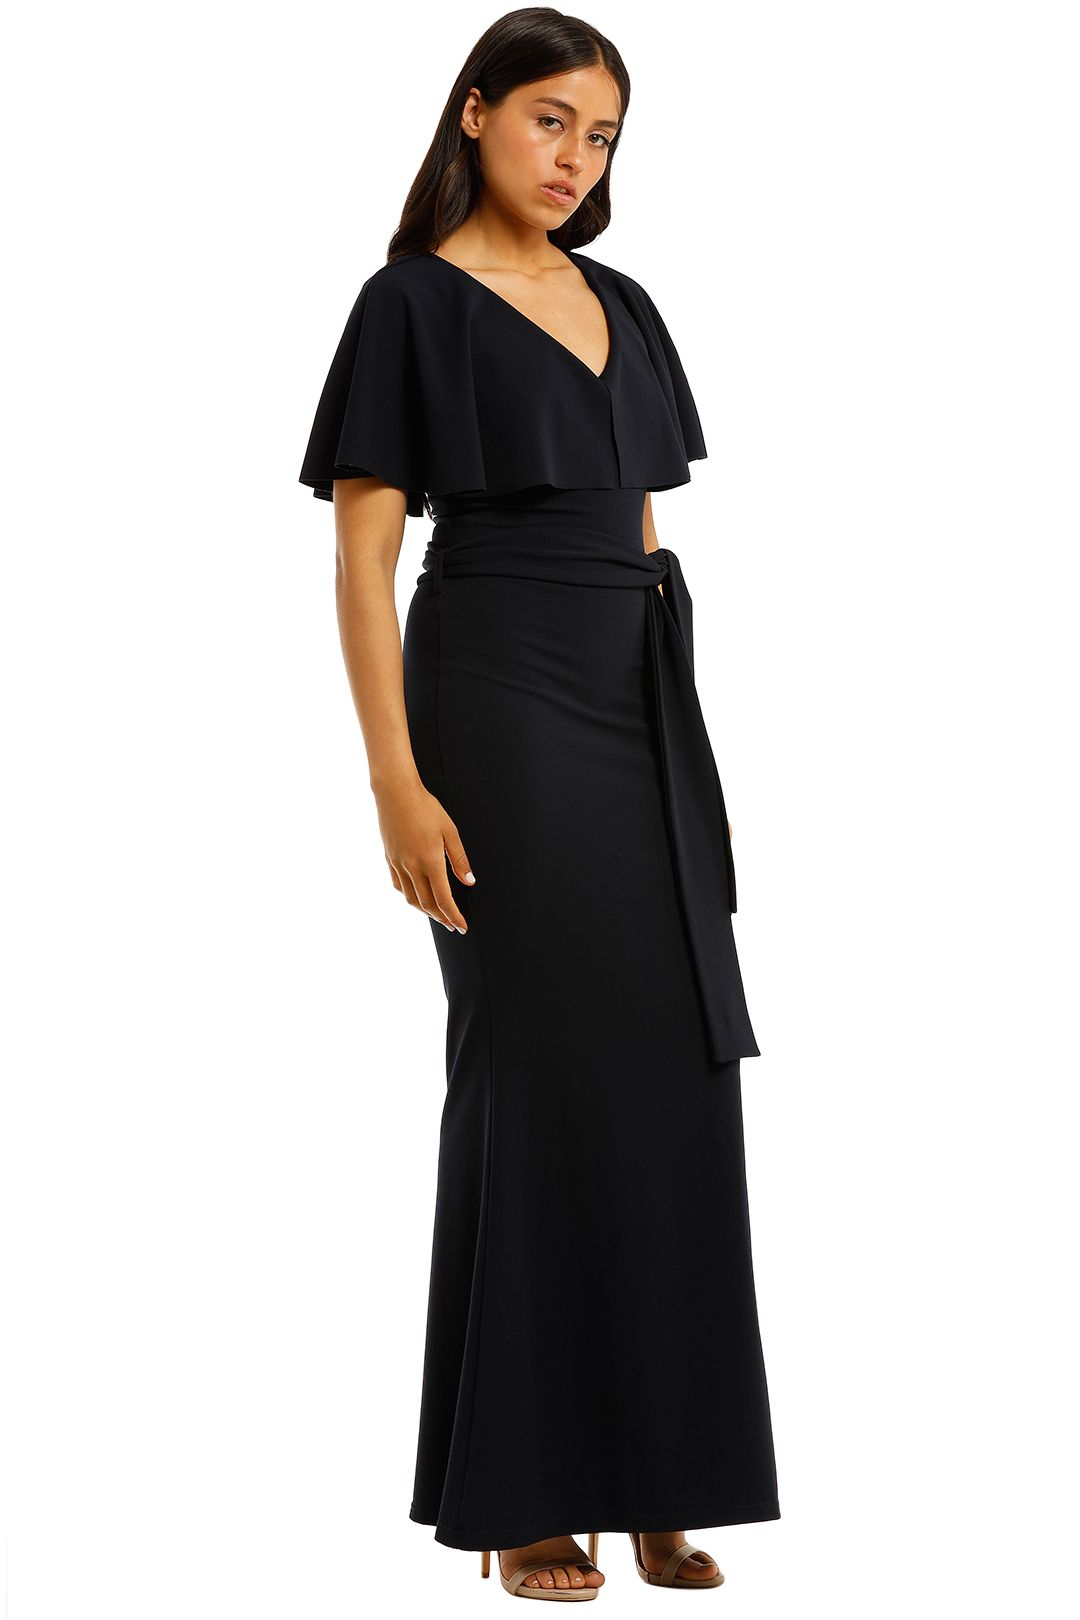 Pasduchas-Mrs-Carter-Gown-Navy-Side